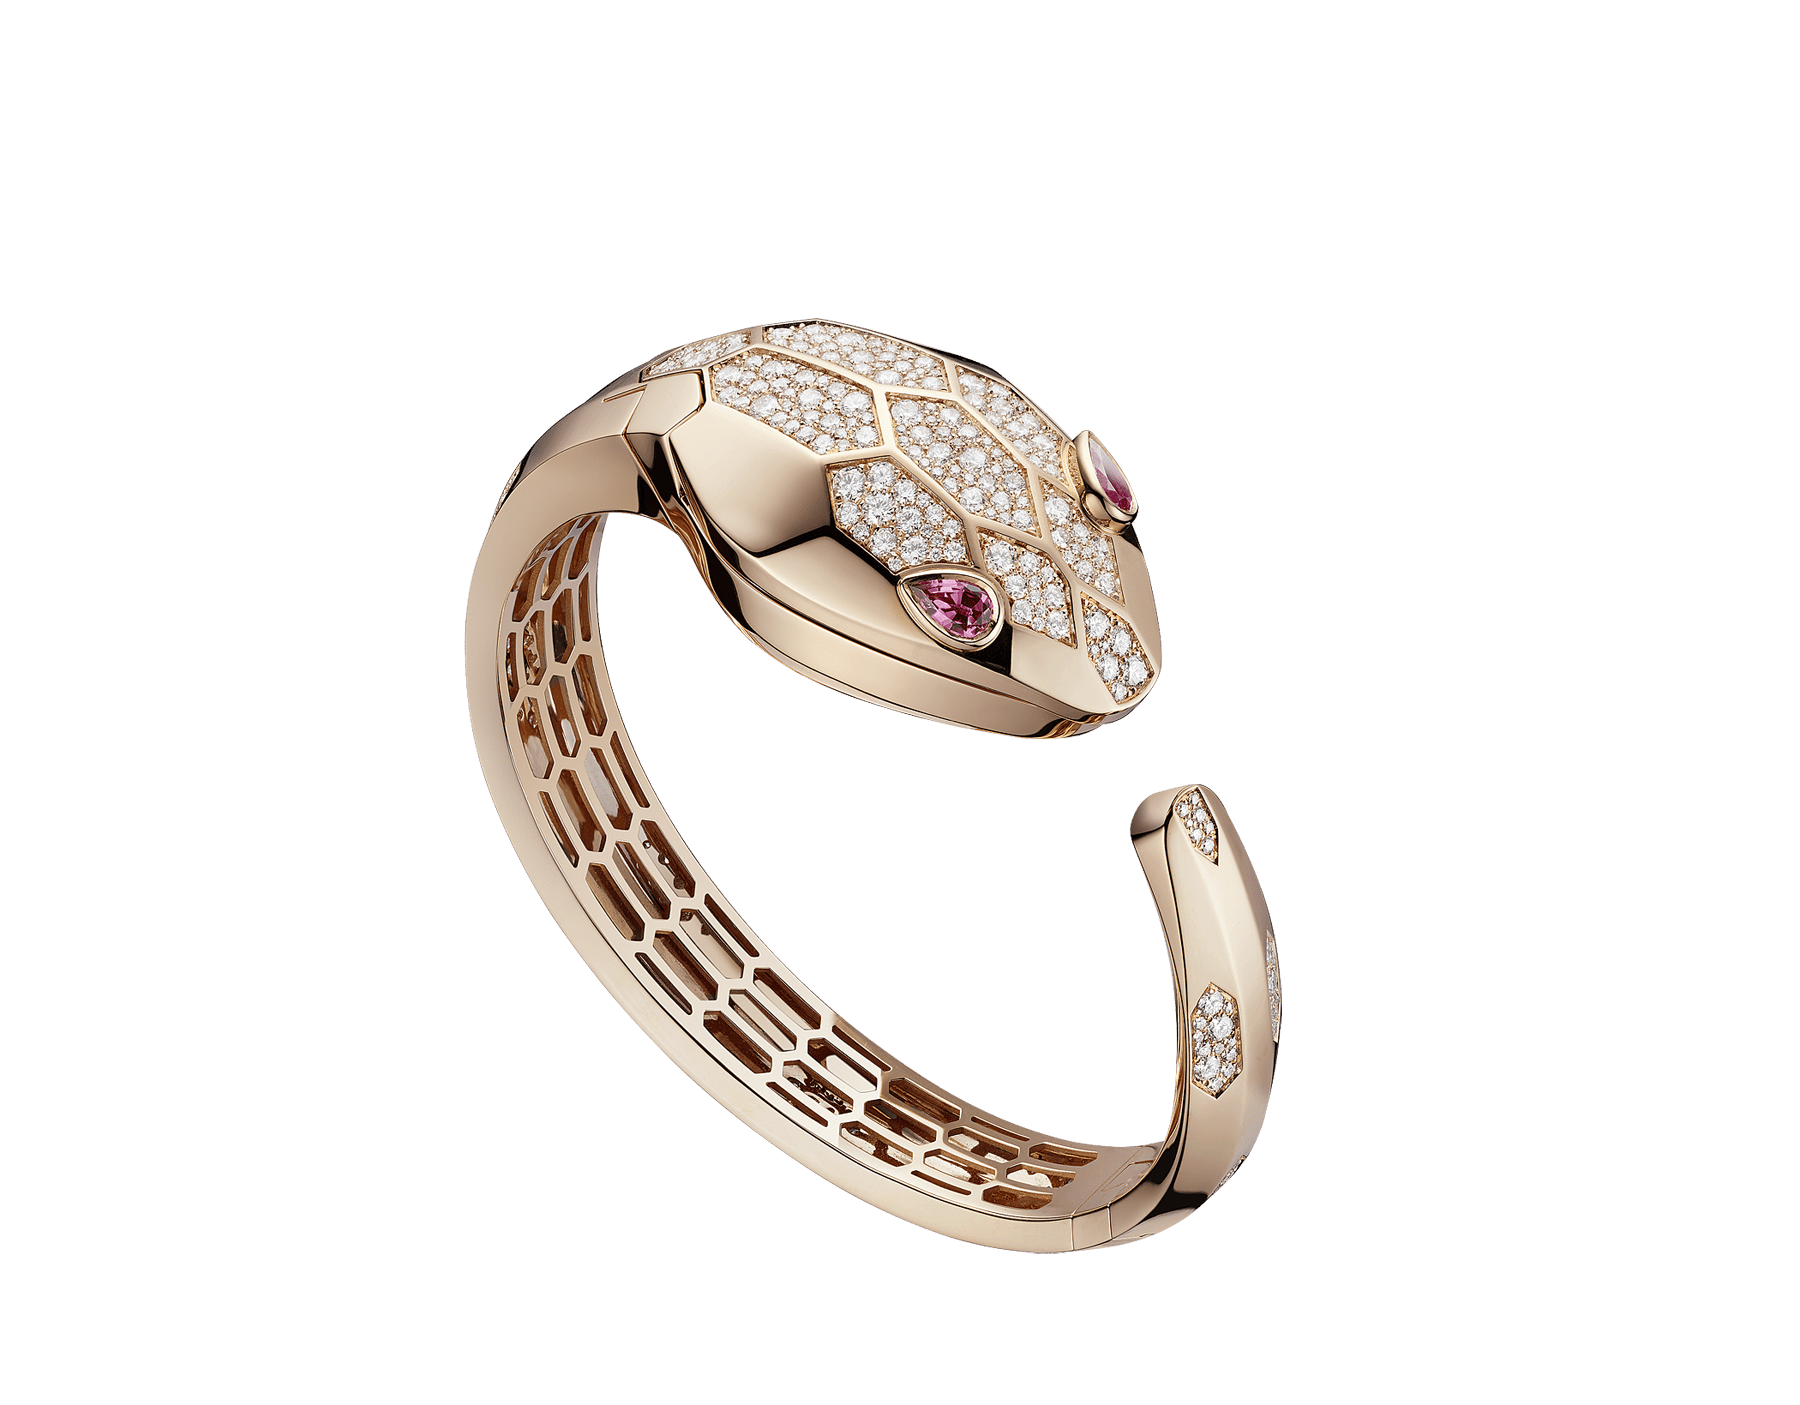 Serpenti Misteriosi Secret Watch in 18 kt rose gold case and bangle bracelet both set with round brilliant-cut diamonds, 18 kt rose gold diamond pavé dial and pear-shaped rubellite eyes. SrpntMister-SecretWtc-rose-gold2 image 6